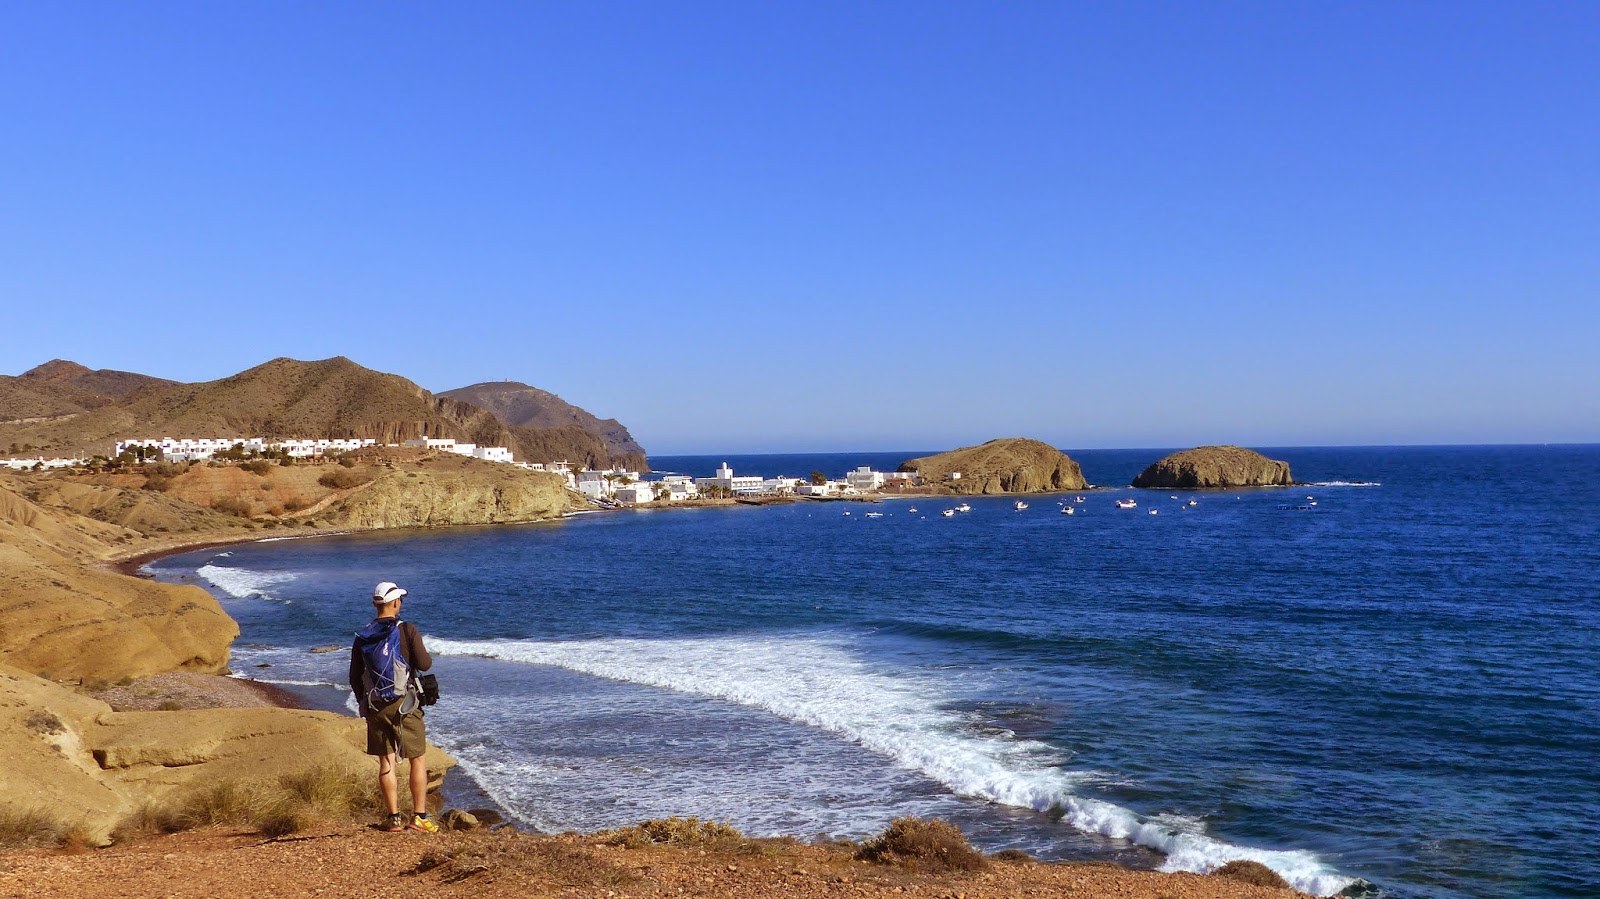 Walking towards La Isleta from Los Escullos